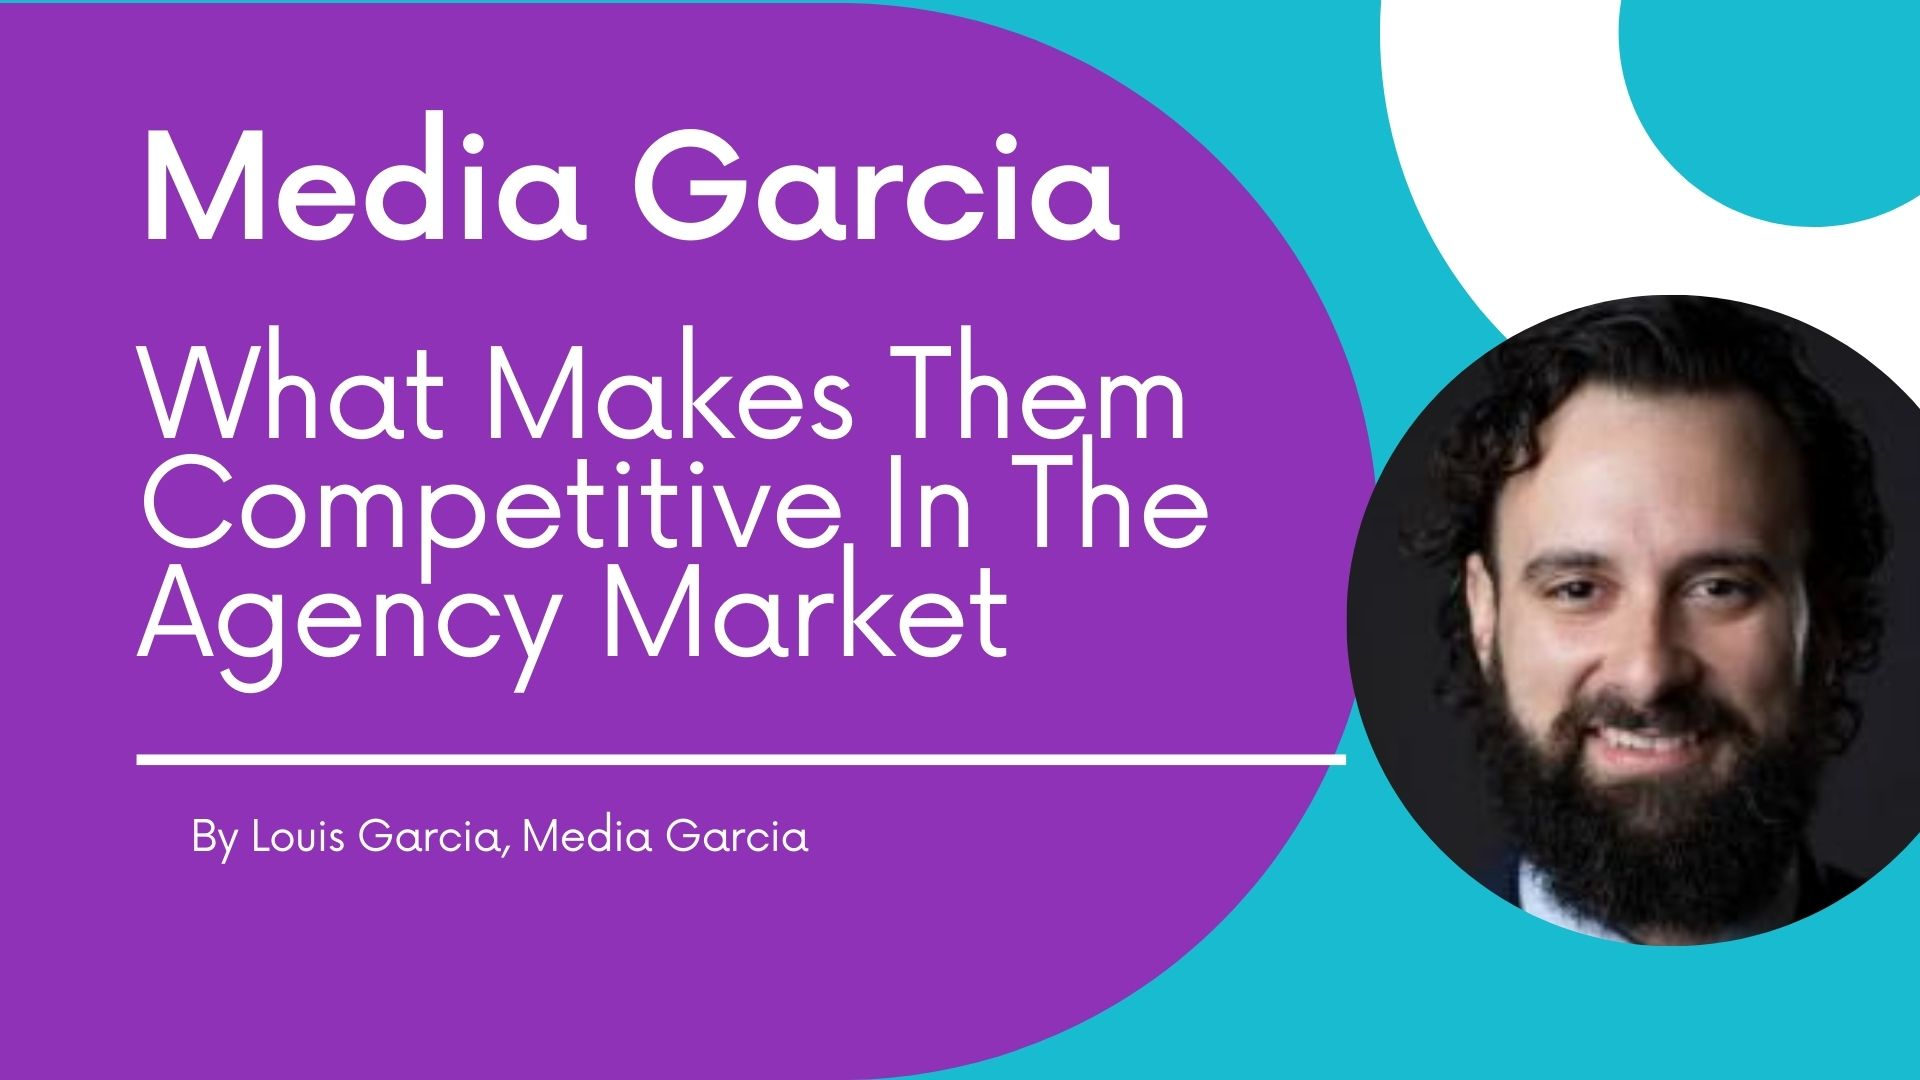 Media Garcia - What makes them competitive in the agency market